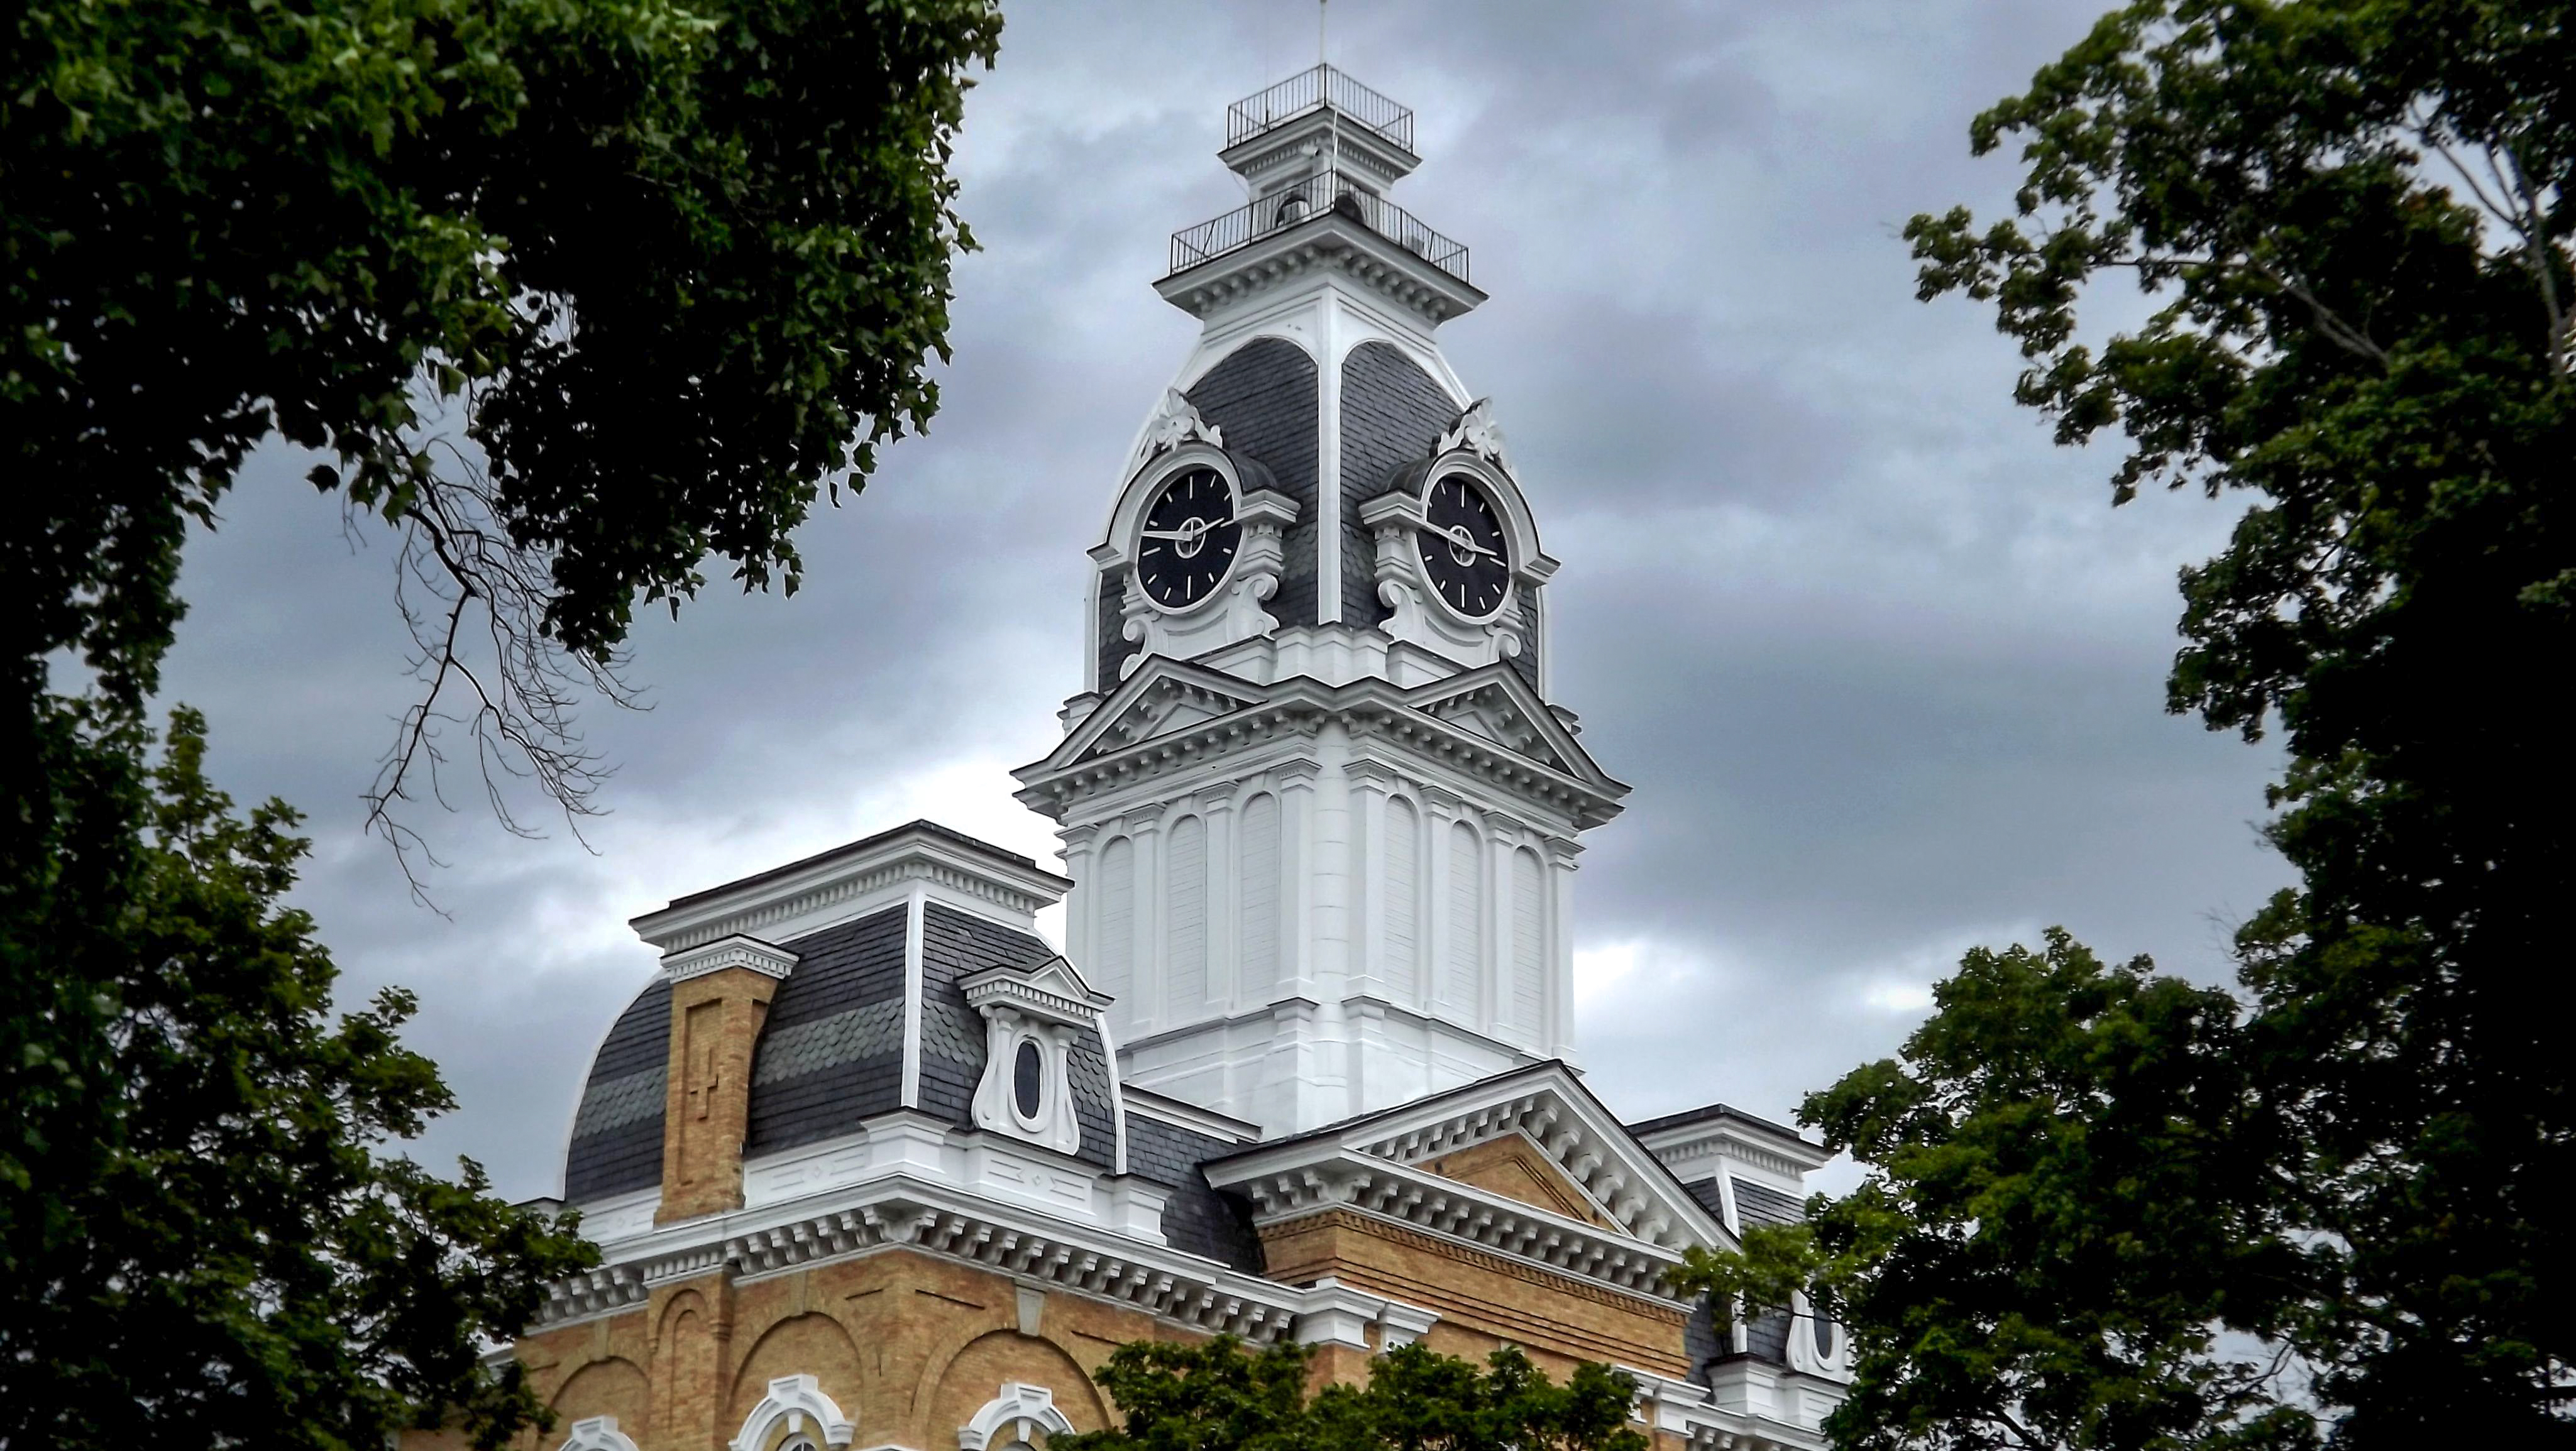 Clocktower building with ominous clouds